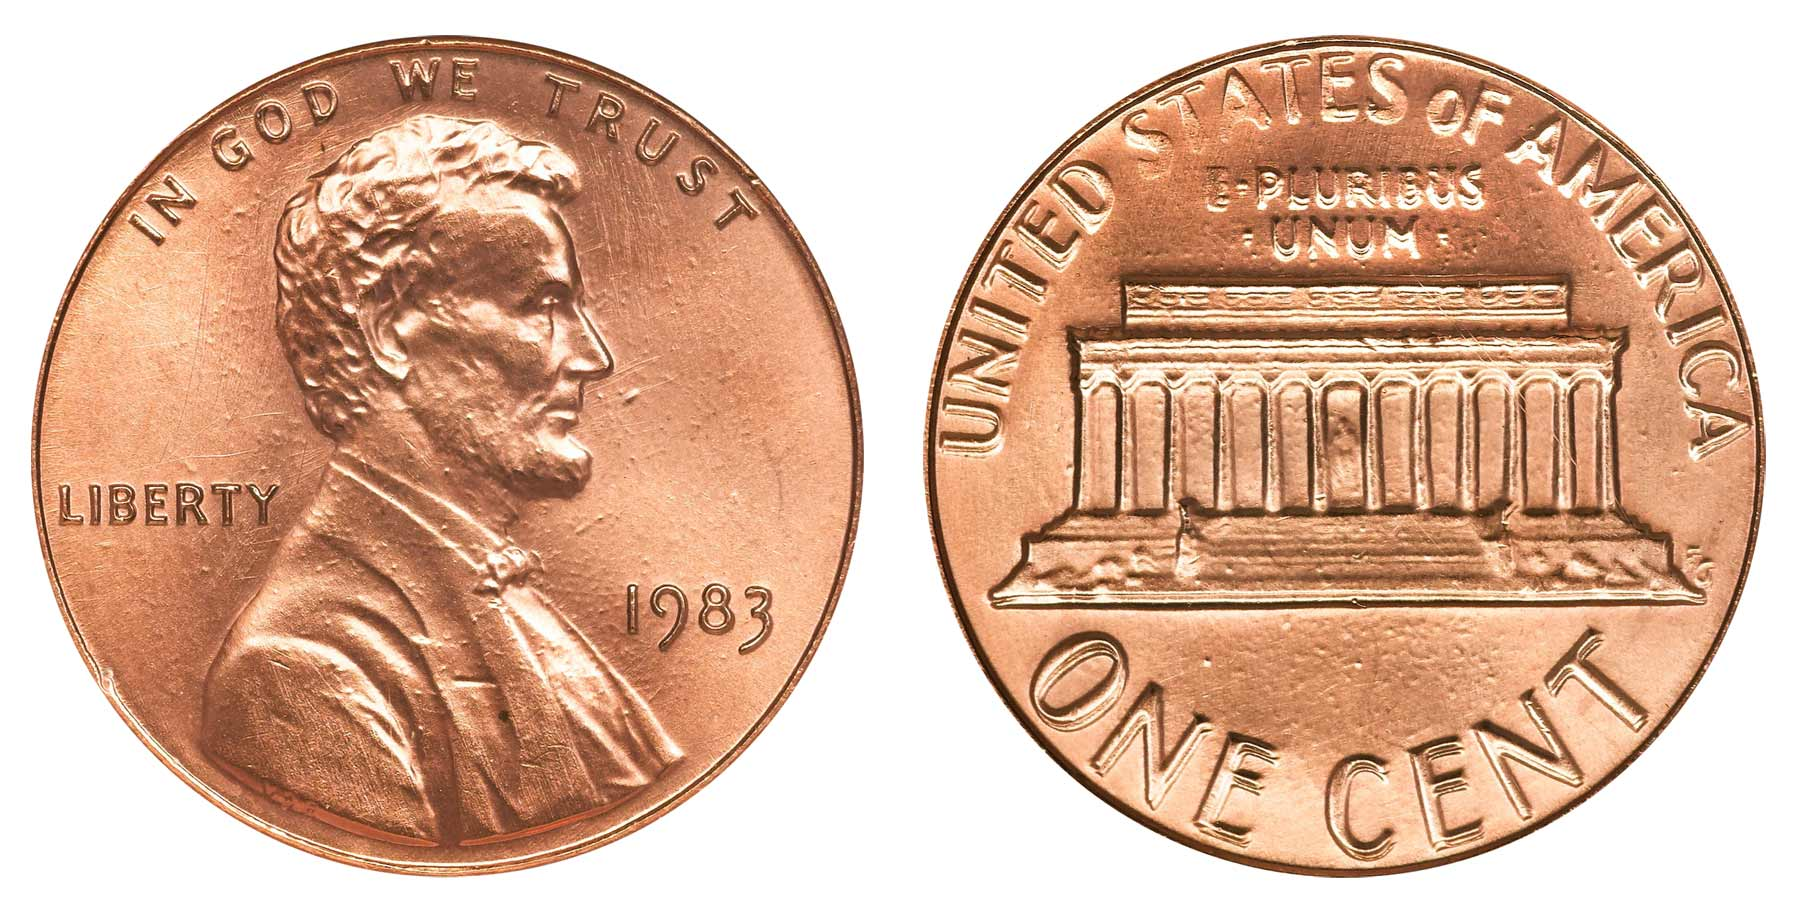 1983 Lincoln Memorial Penny Doubled Die Reverse Coin Value